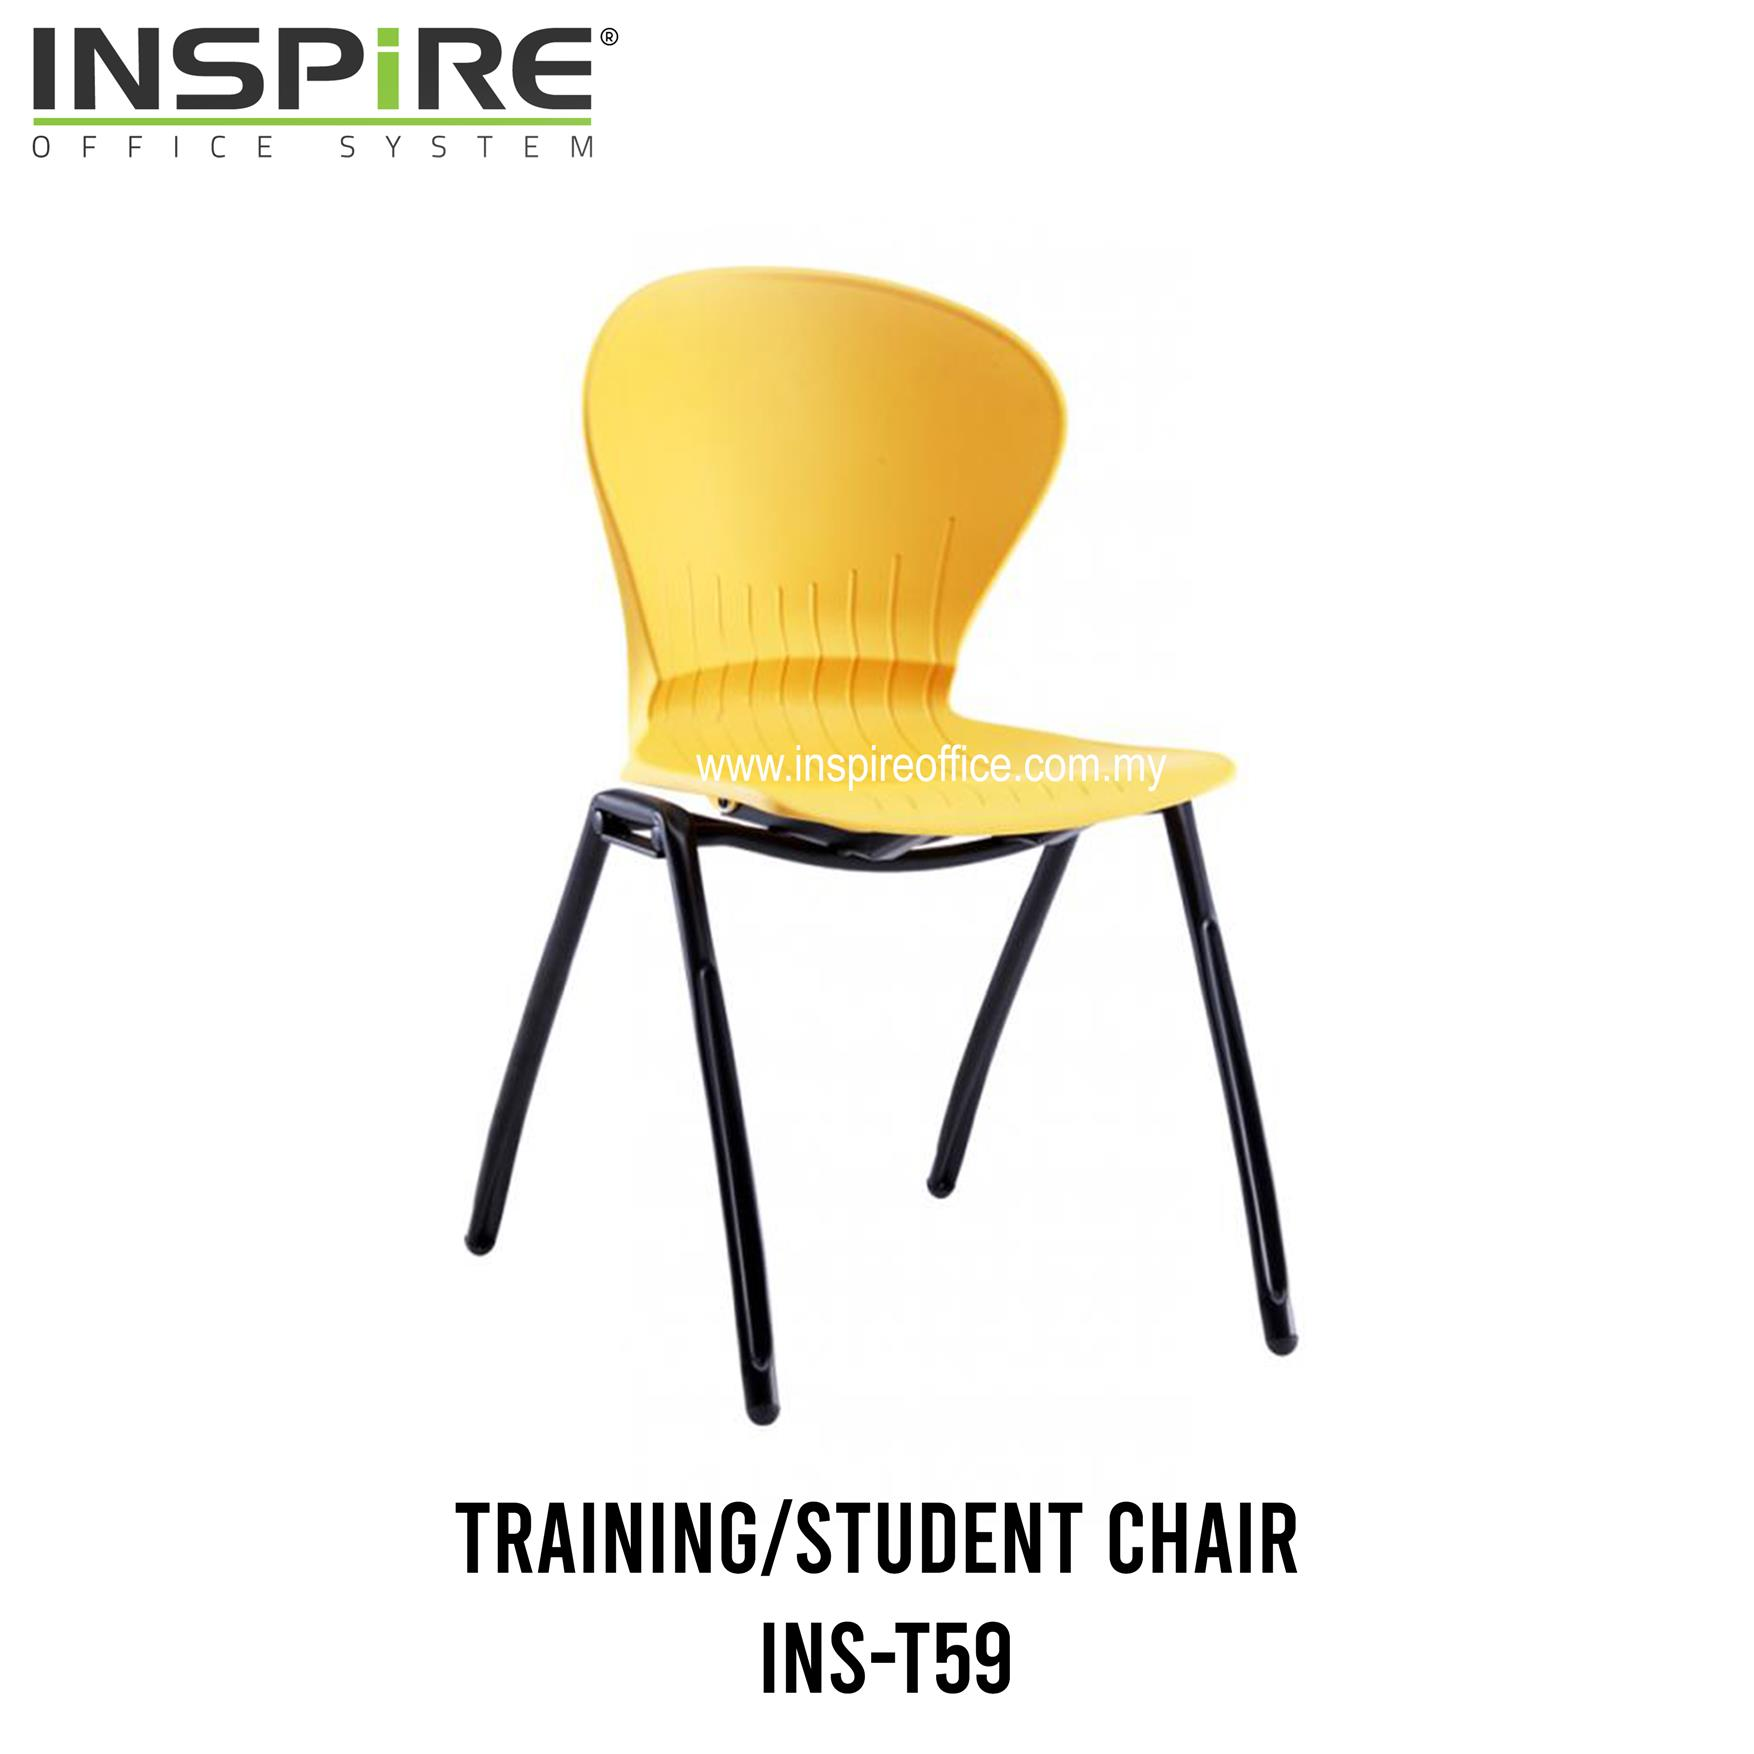 INS-T59 Training/Student Chair